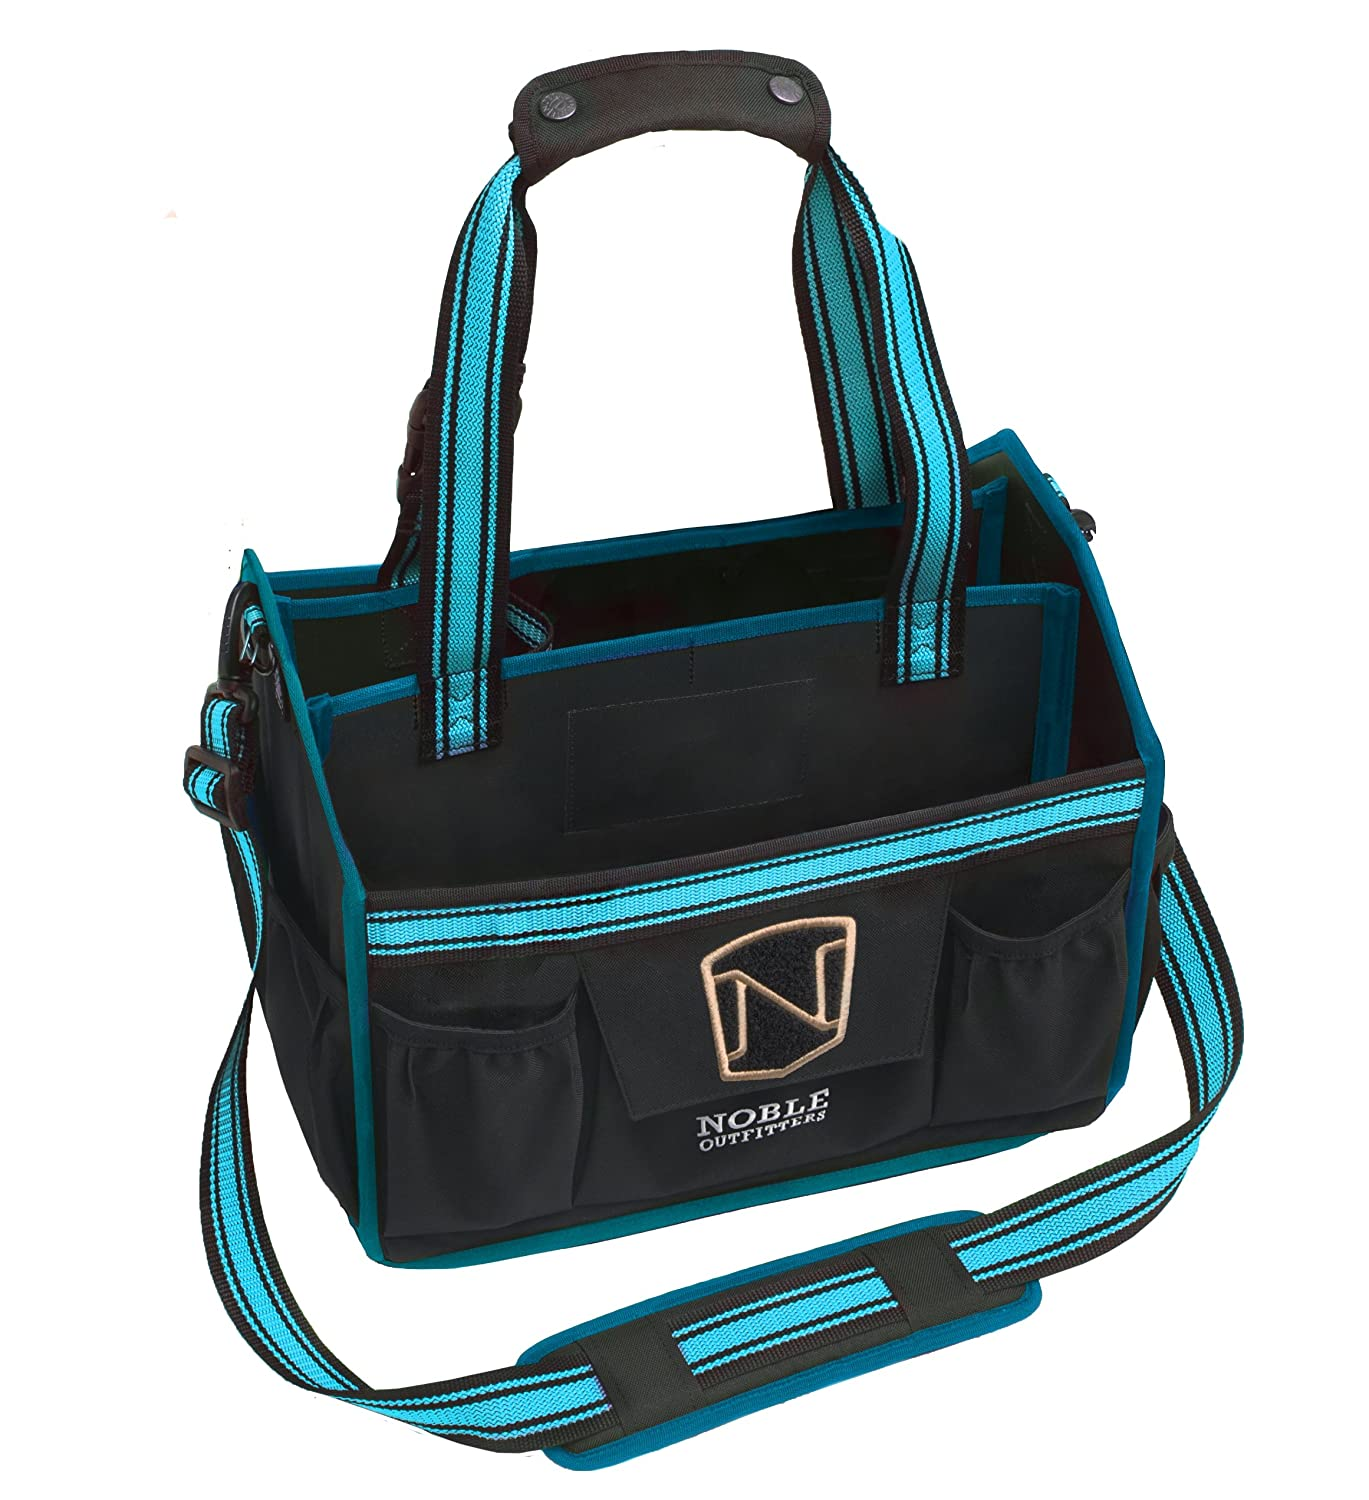 equin Essential Tote  Deep Turquoise B019QGSEL0